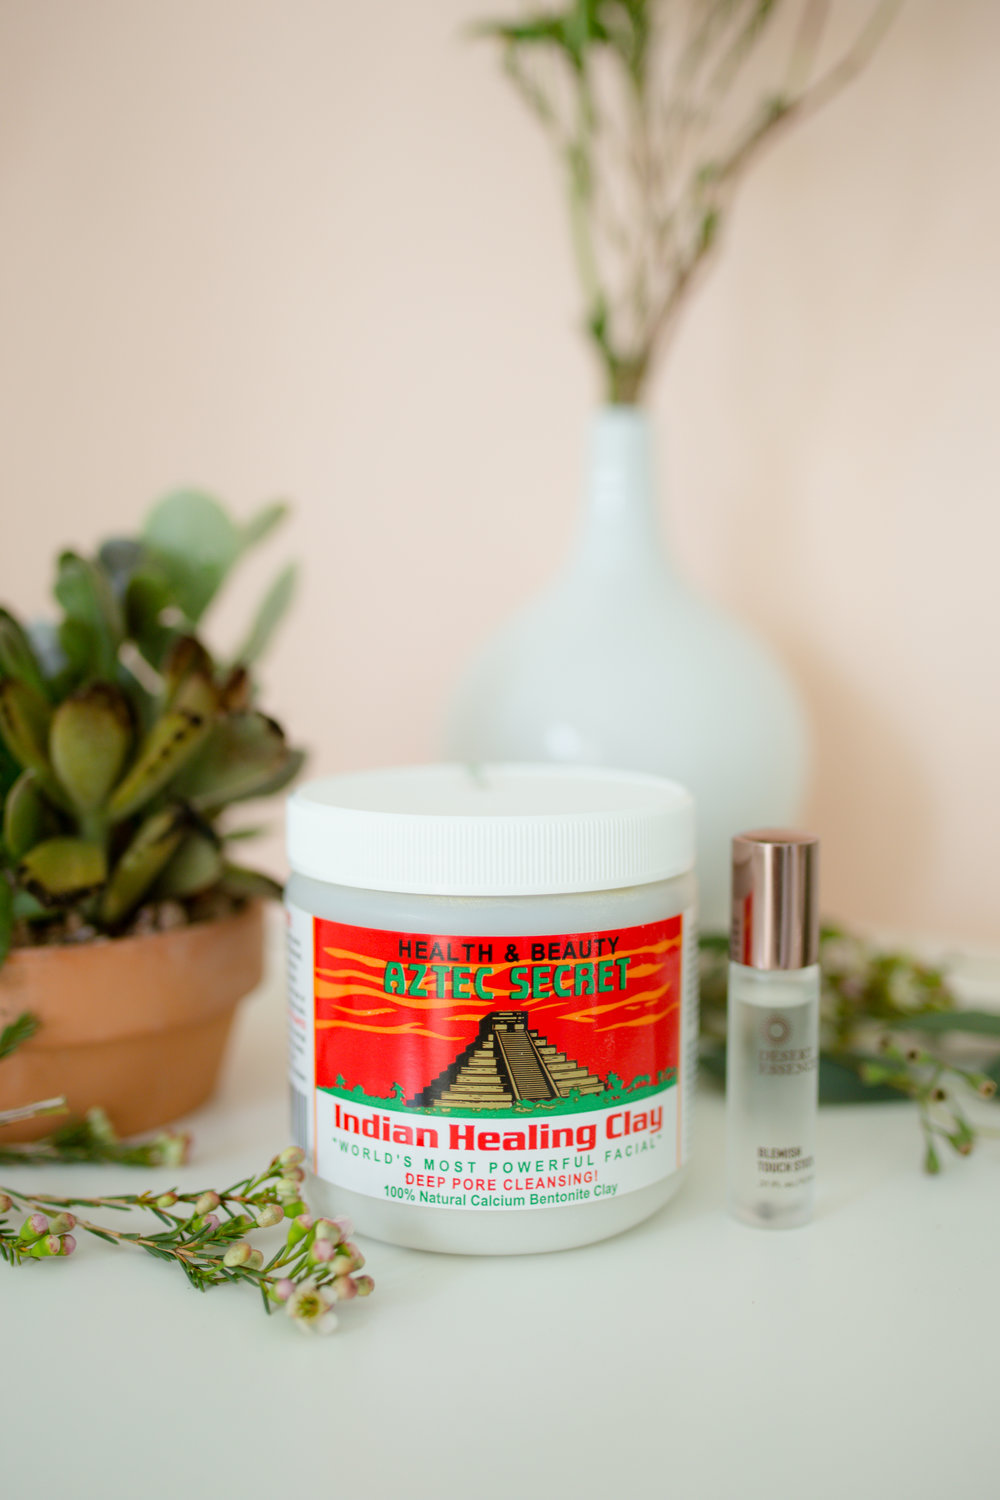 Favorite Green Beauty Products : Acne FIghter's - Desert Essence Tea Tree Blemish Stick + Indian Healing Clay